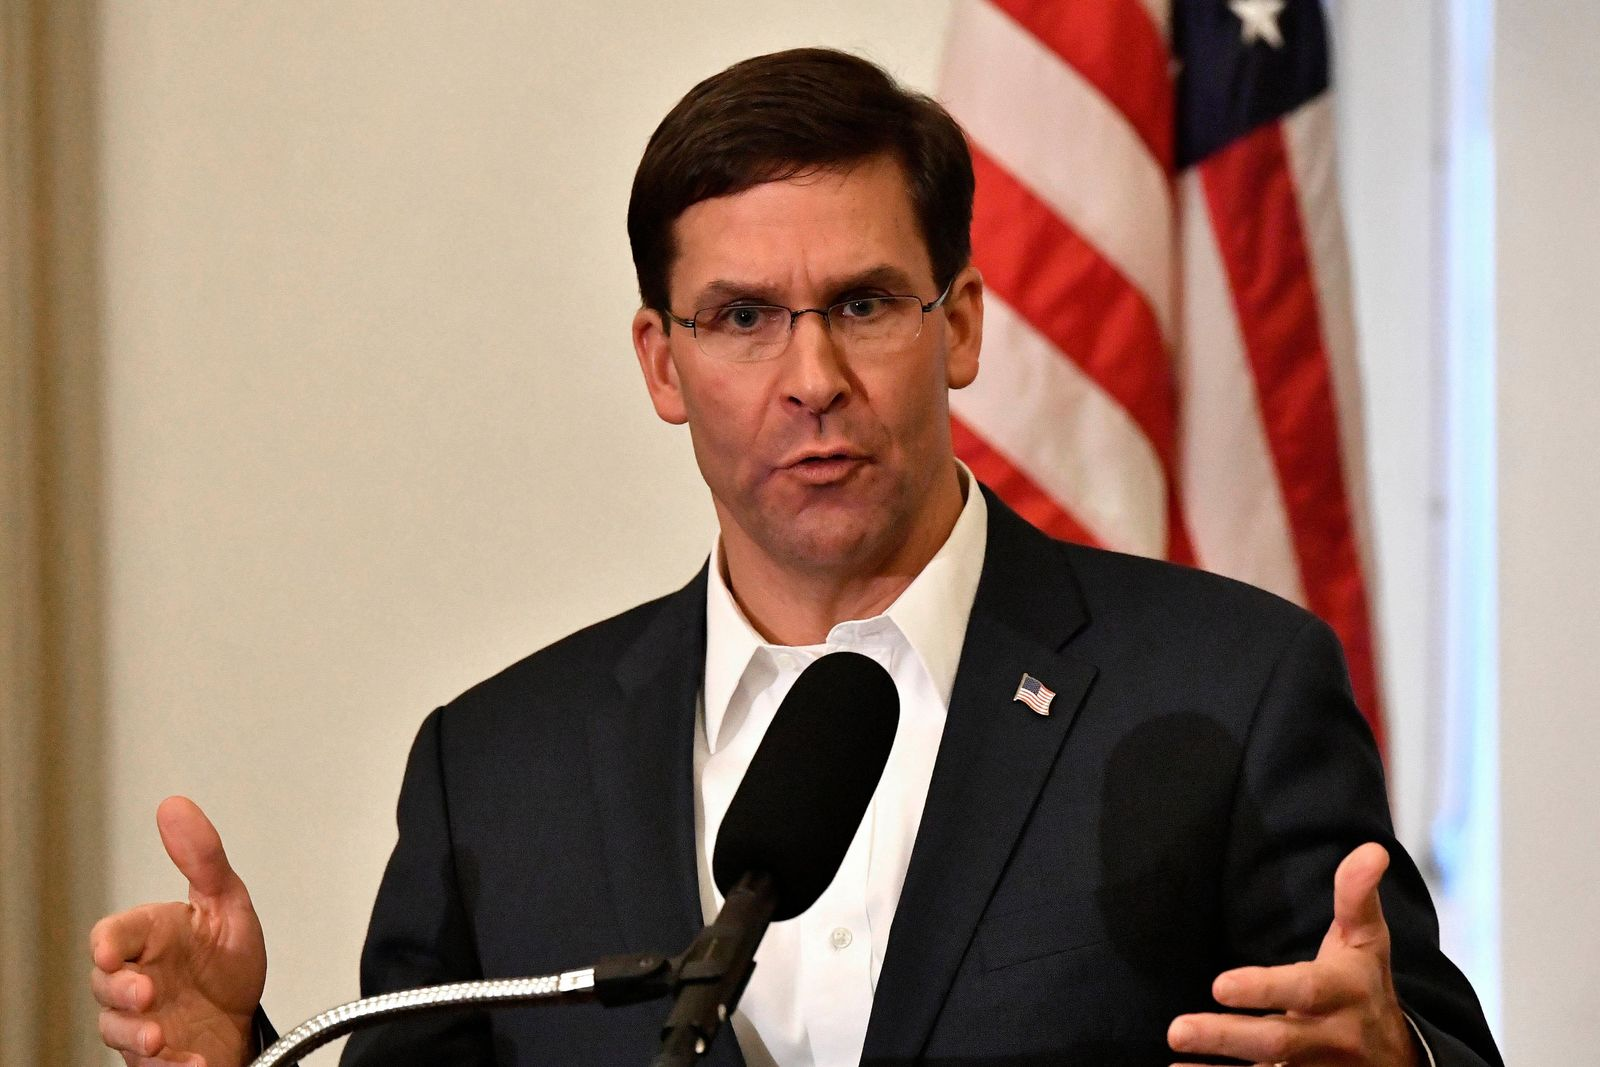 FILE - In this Friday, Oct. 4, 2019 file photo, Defense Secretary Mark Esper speaks to a gathering of soldiers at the University Club at the University of Louisville in Louisville, Ky. Esper says during a weekend trip to the Middle East that under the current plan all U.S. troops leaving Syria will go to western Iraq, and that the military will continue to conduct operations against the Islamic State group to prevent a resurgence in that country. As Esper left Washington on Saturday, Oct. 19, U.S. troops were continuing to pull out of northern Syria after Turkey's invasion into the border region. (AP Photo/Timothy D. Easley, File)